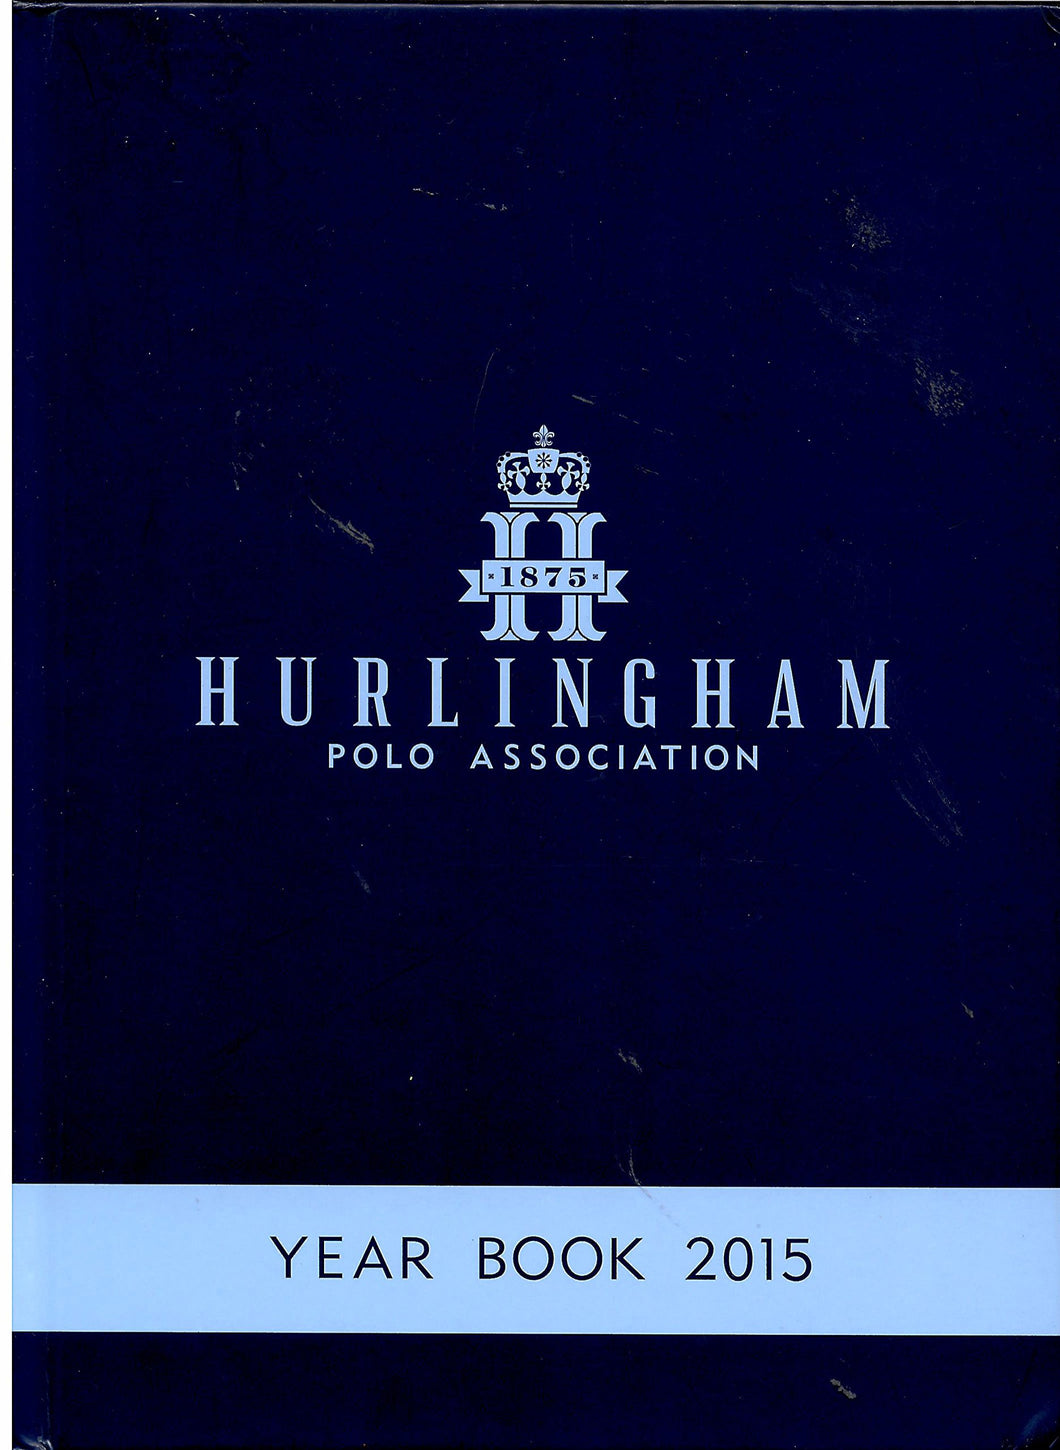 Hurlingham Polo Association: Year Book 2015